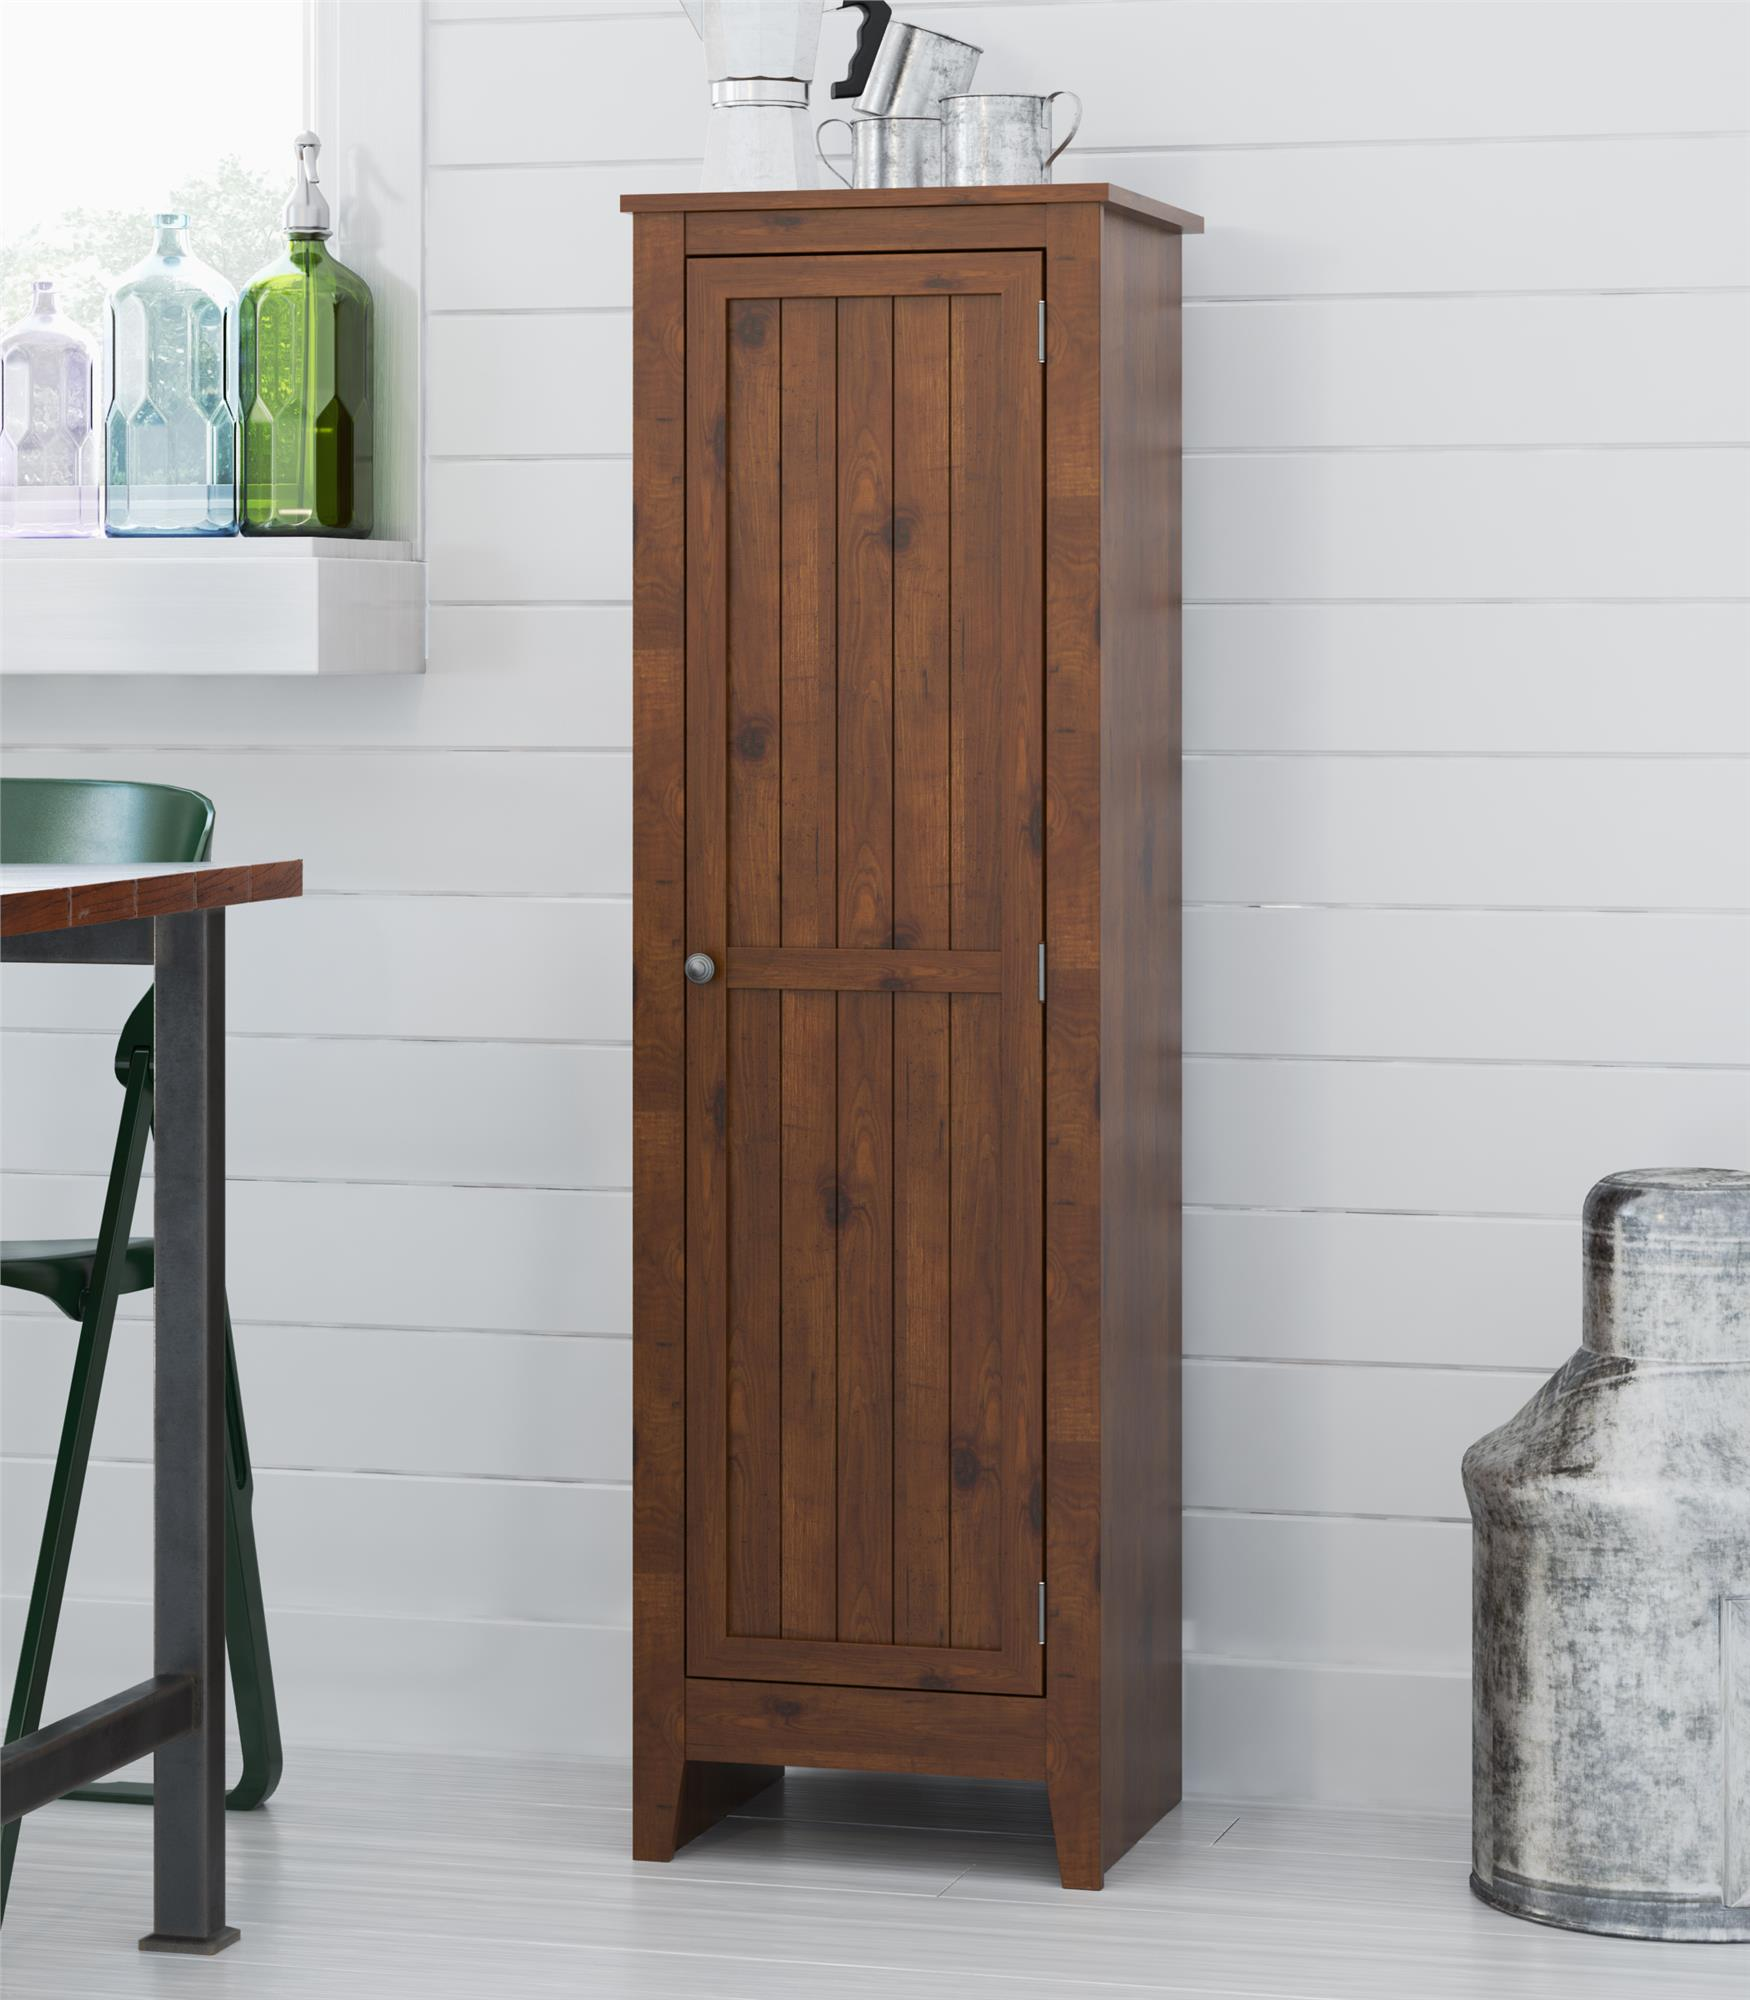 Superieur Ameriwood Home Milford Single Door Storage Pantry Cabinet, Old Fashioned  Pine